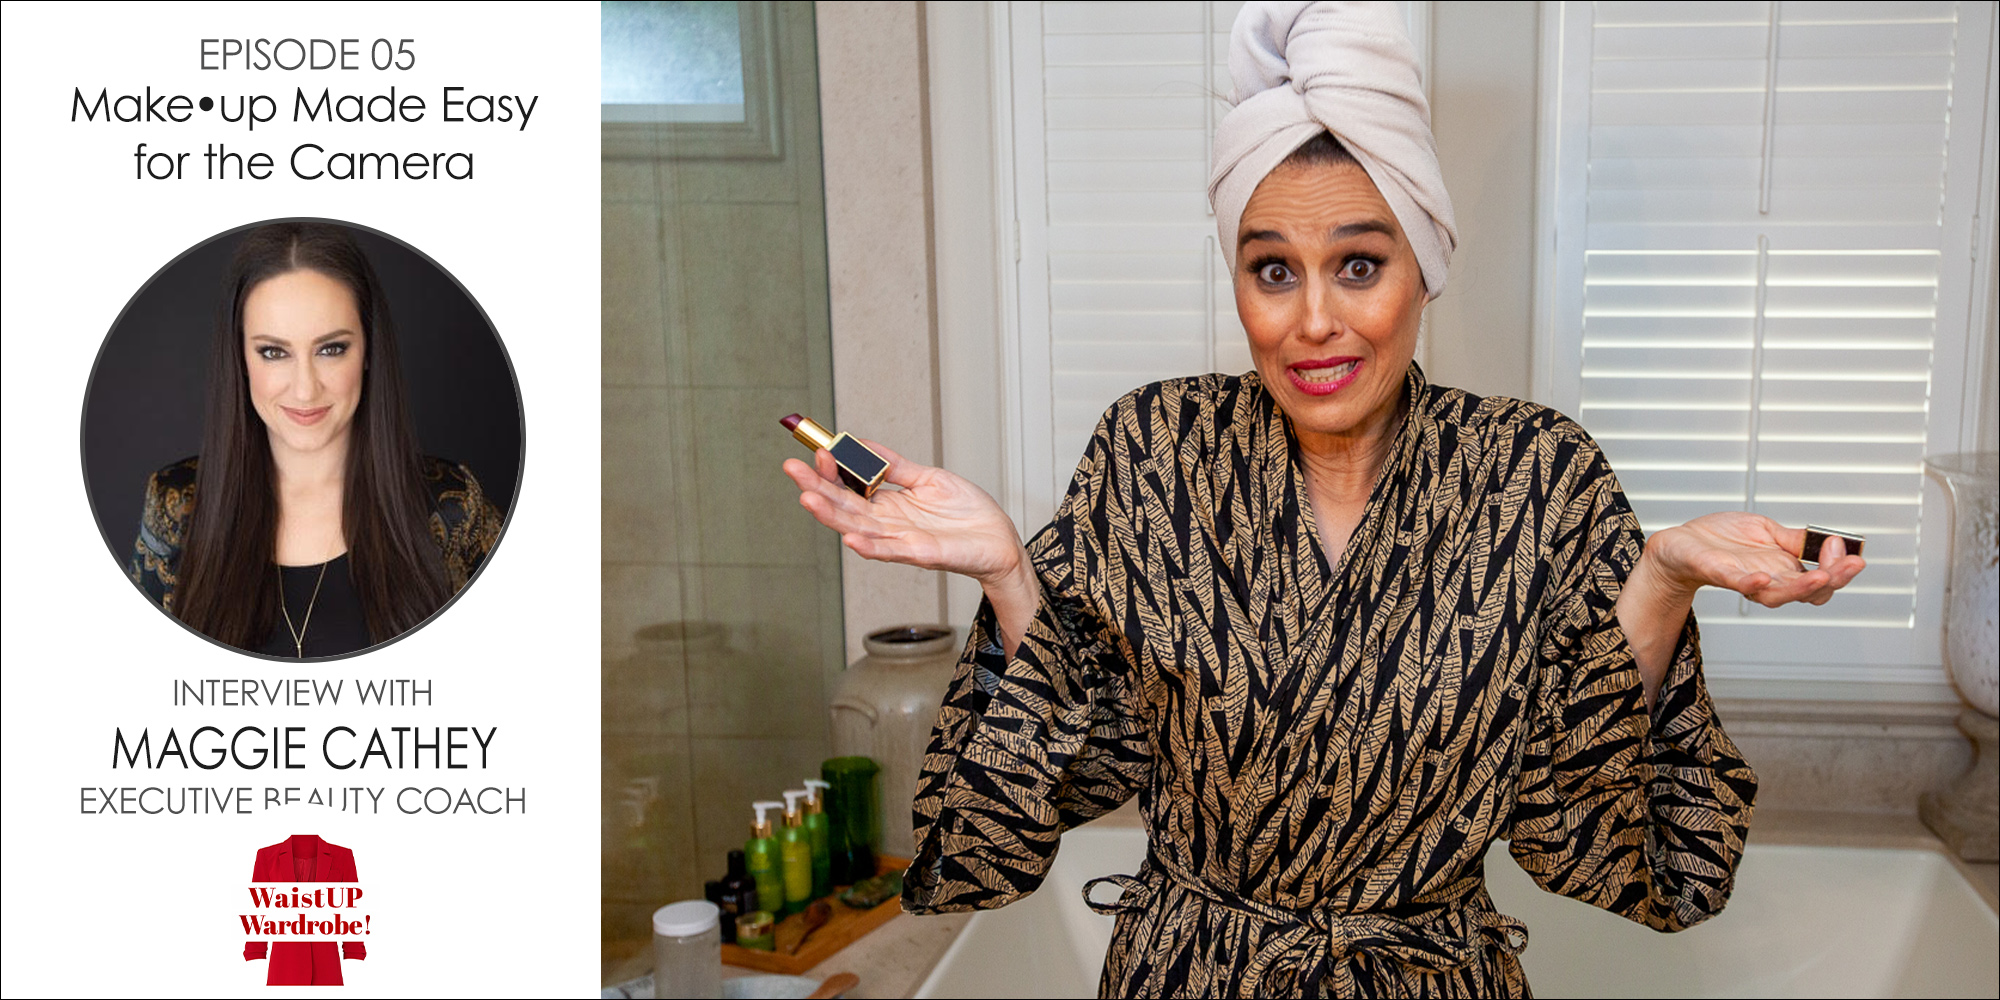 Christine Vartanian sitting in a bathroom on the edge of a bathtub wearing a black and gold robe, holding a lipstick with her hair wrapped up in a towel promoting how to be makeup ready for the camera